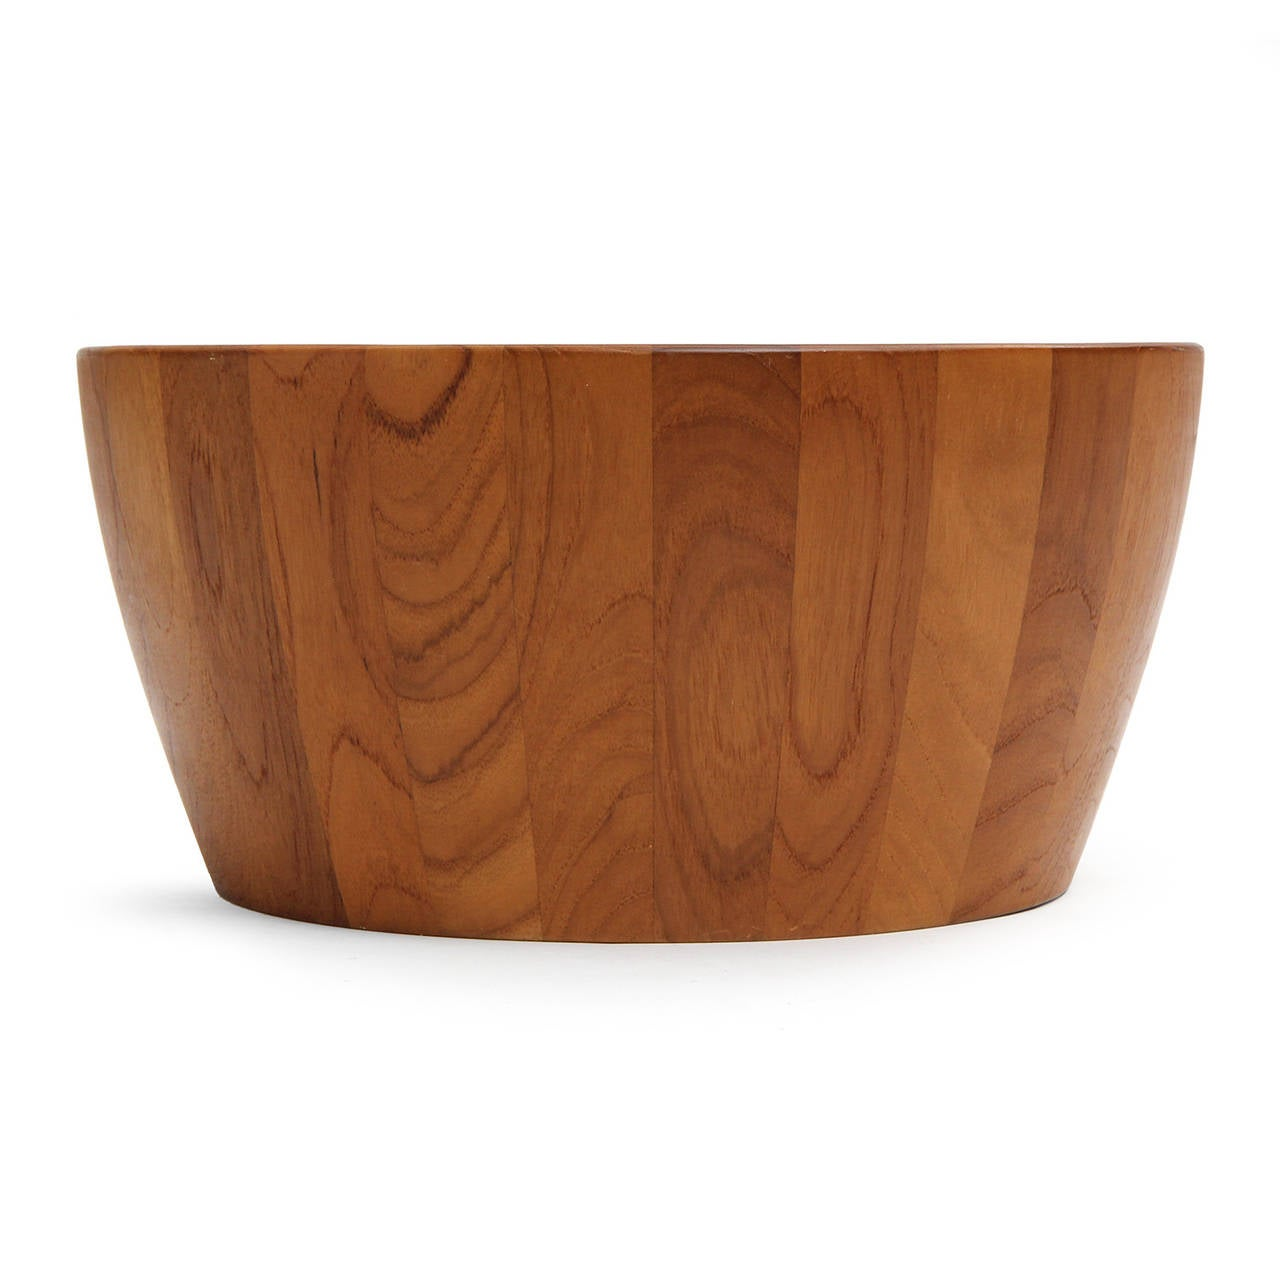 A Scandinavian Modern large scaled and beautifully crafted staved teak bowl having a subtly flaring round form. Designed and manufactured by Richard Nissen in Denmark, circa 1960s.